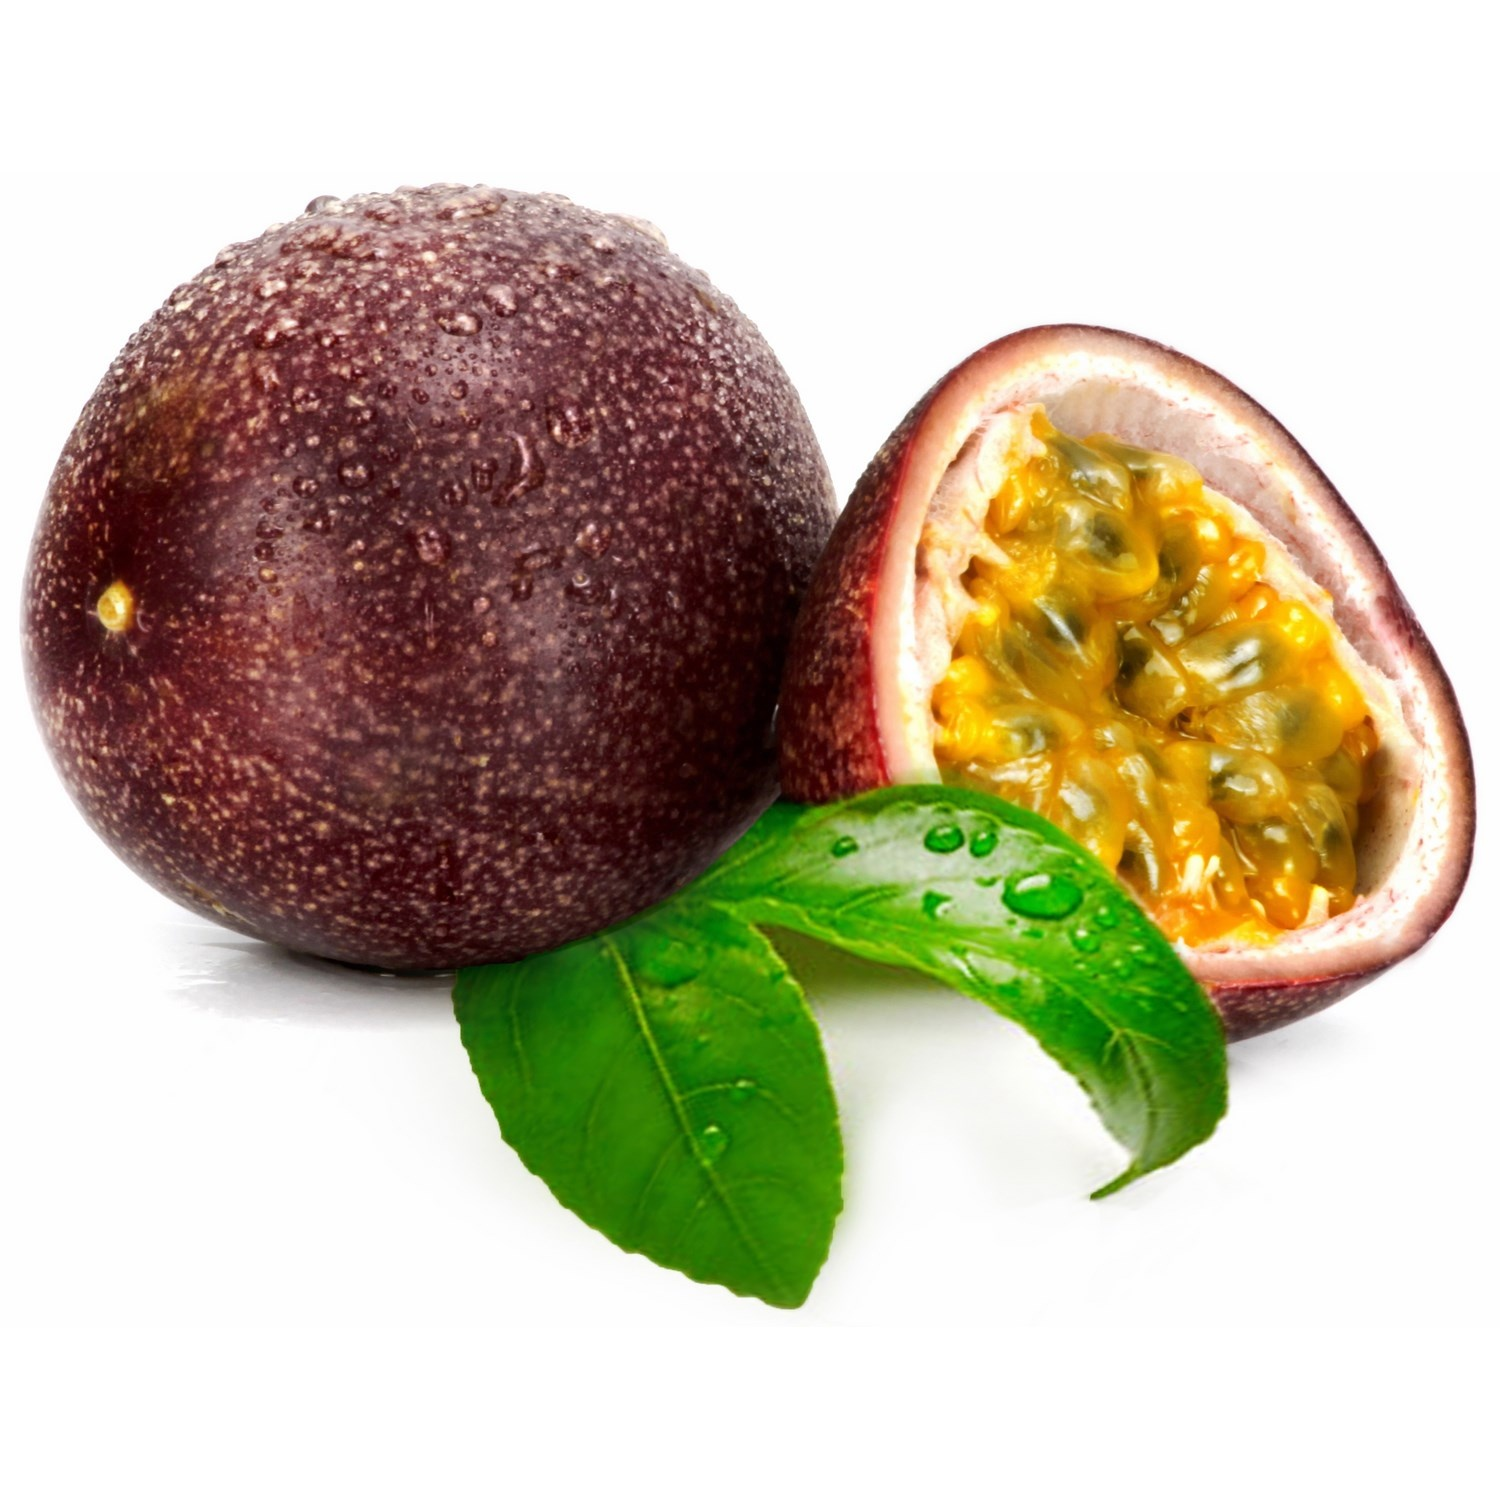 Fruits riche en antioxydants naturels antioxydant cancer acheter - Fruit de la ronce commune ...